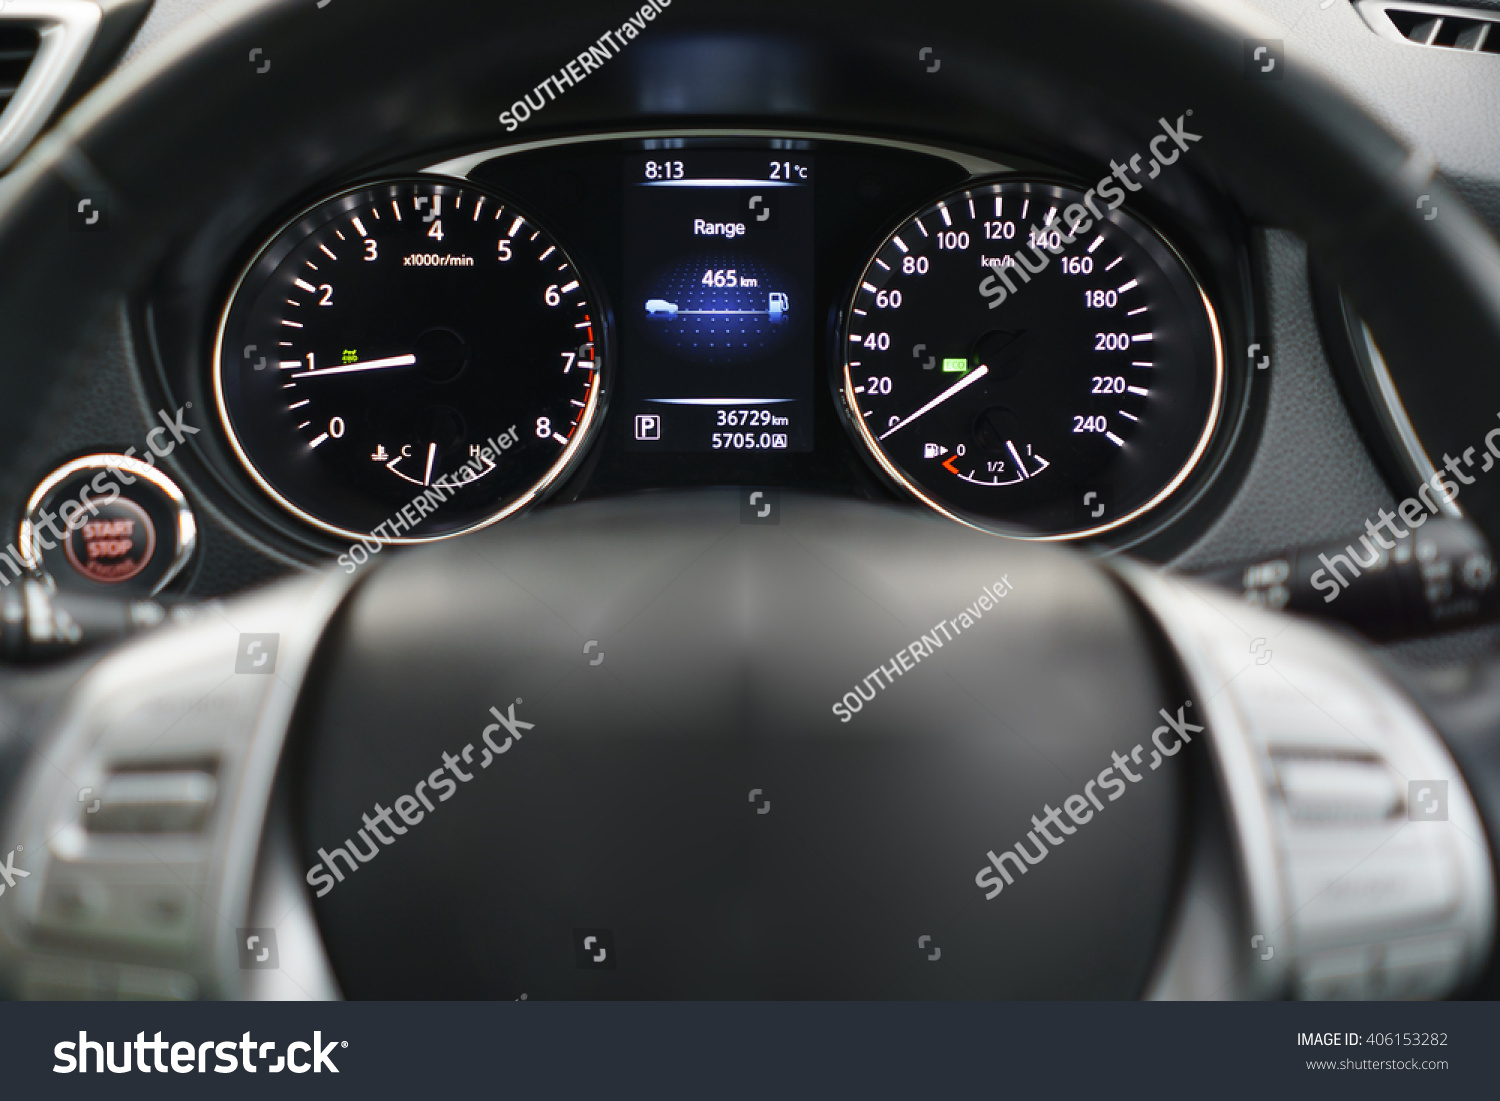 Car Dashboard Car Interior Modern Car Stock Photo - Car image sign of dashboardcar dashboard icons stock photospictures royalty free car